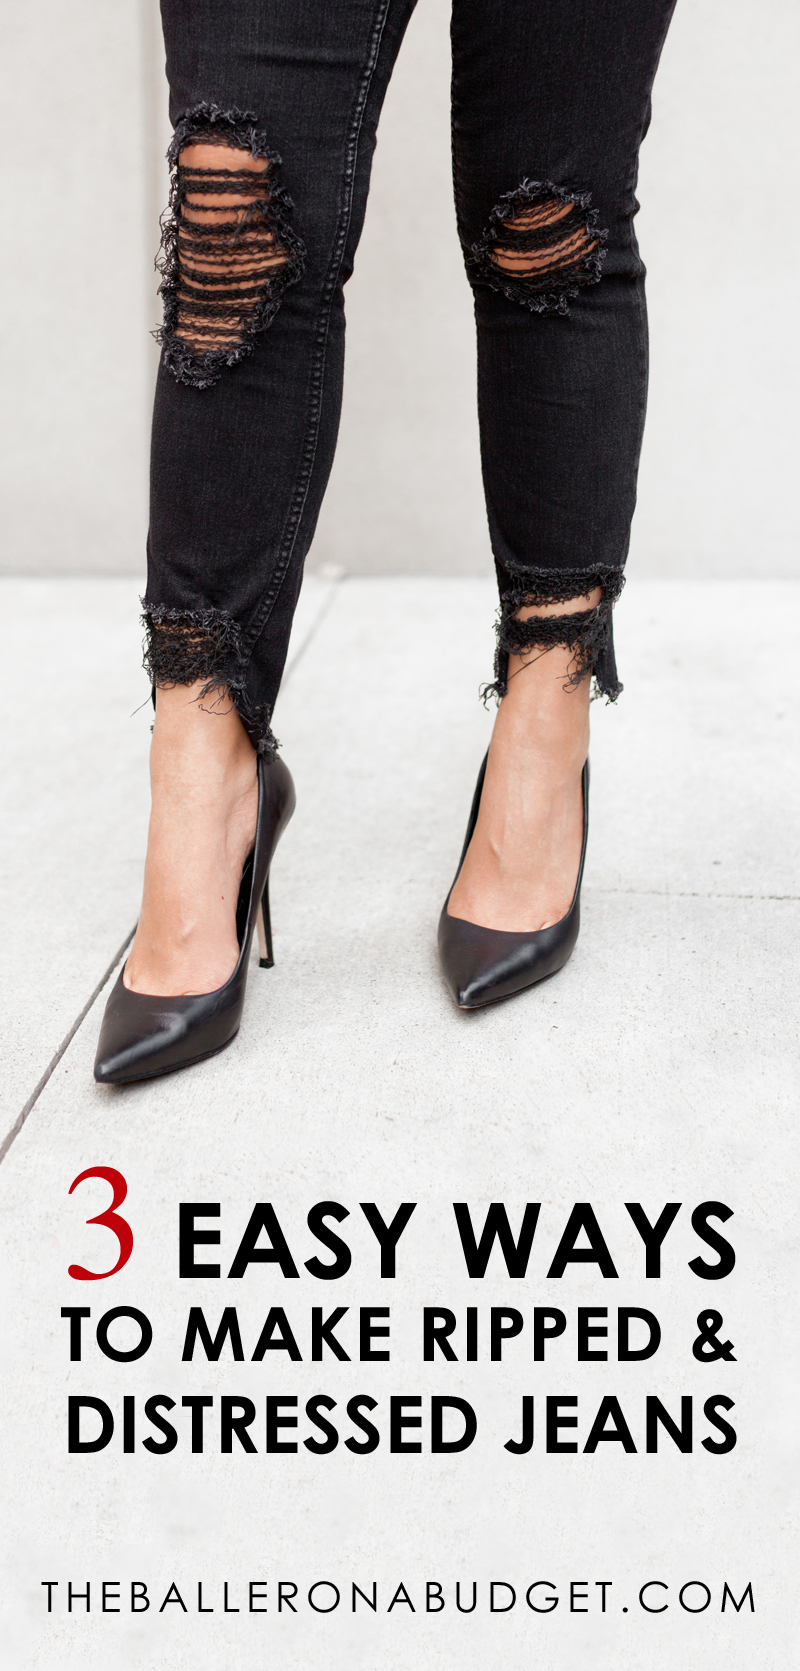 Want that distressed designer denim look without the price tag? Here are 3 incredibly easy DIY projects to create your own distressed jeans! From frayed hems to ripped knees, you can turn all of your jeans into designer ripped jeans within minutes. - www.theballeronabudget.com